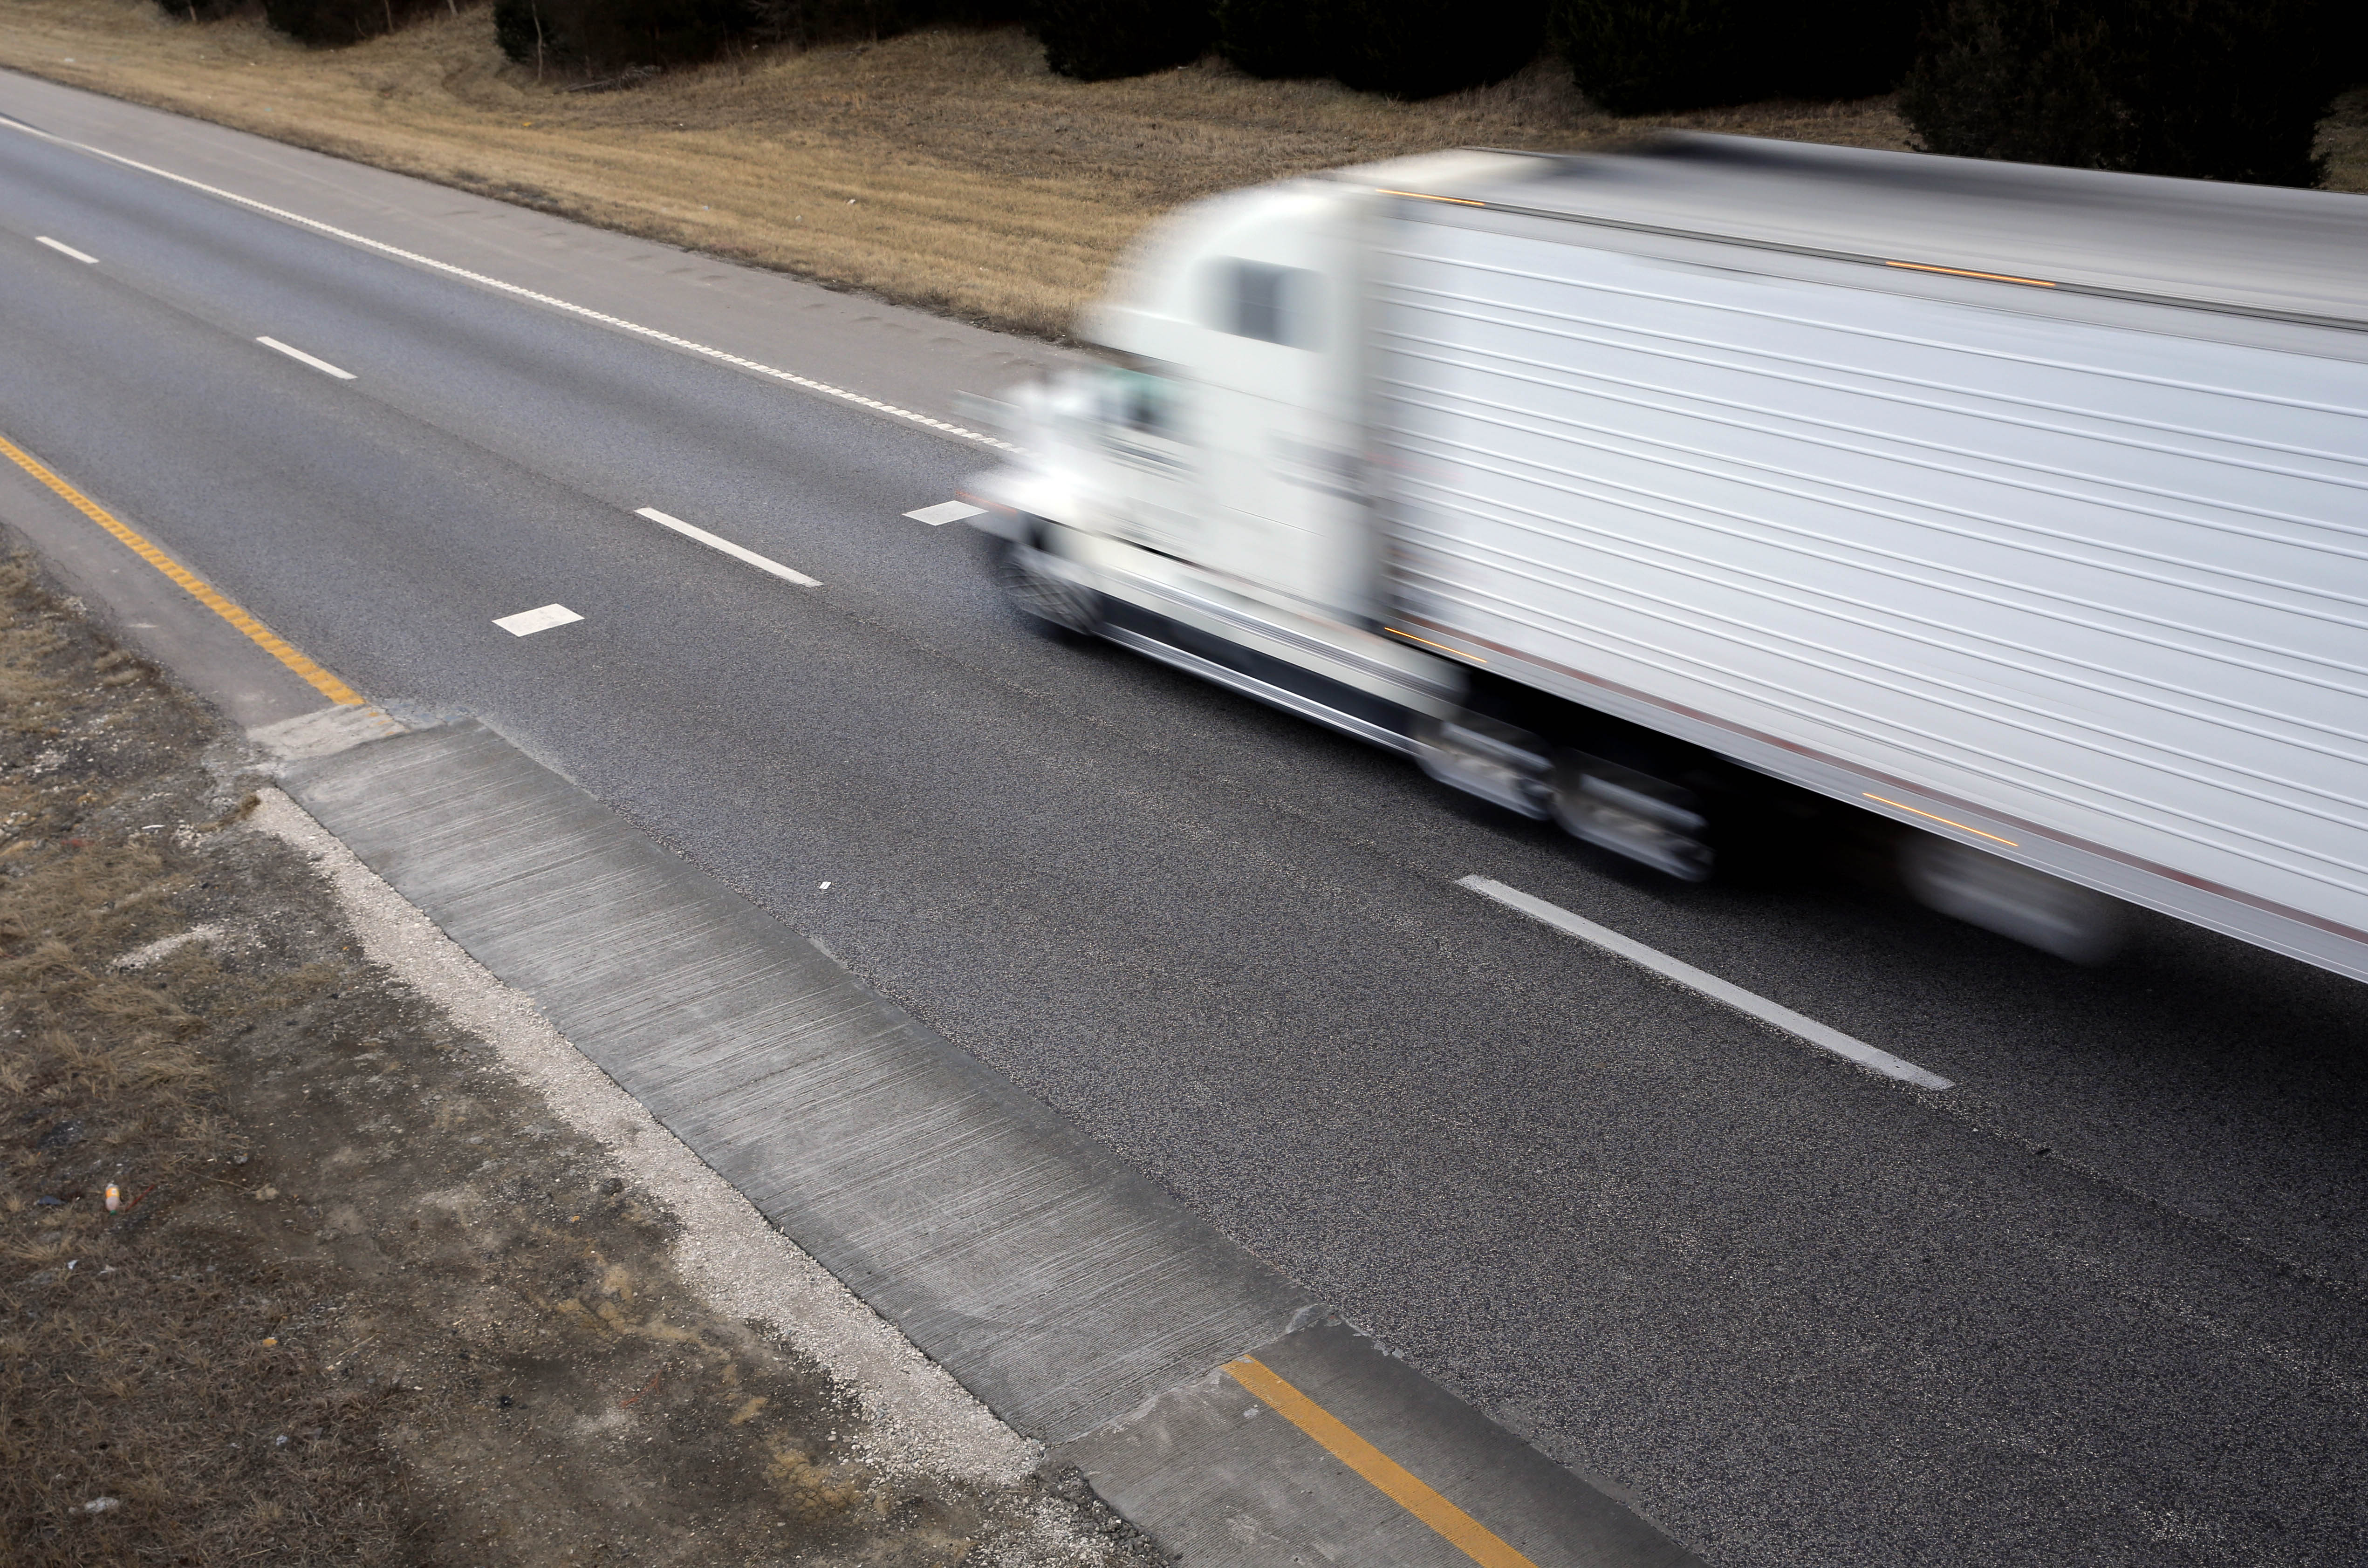 Tractor-trailer driver indicted in fatal Maryland crash